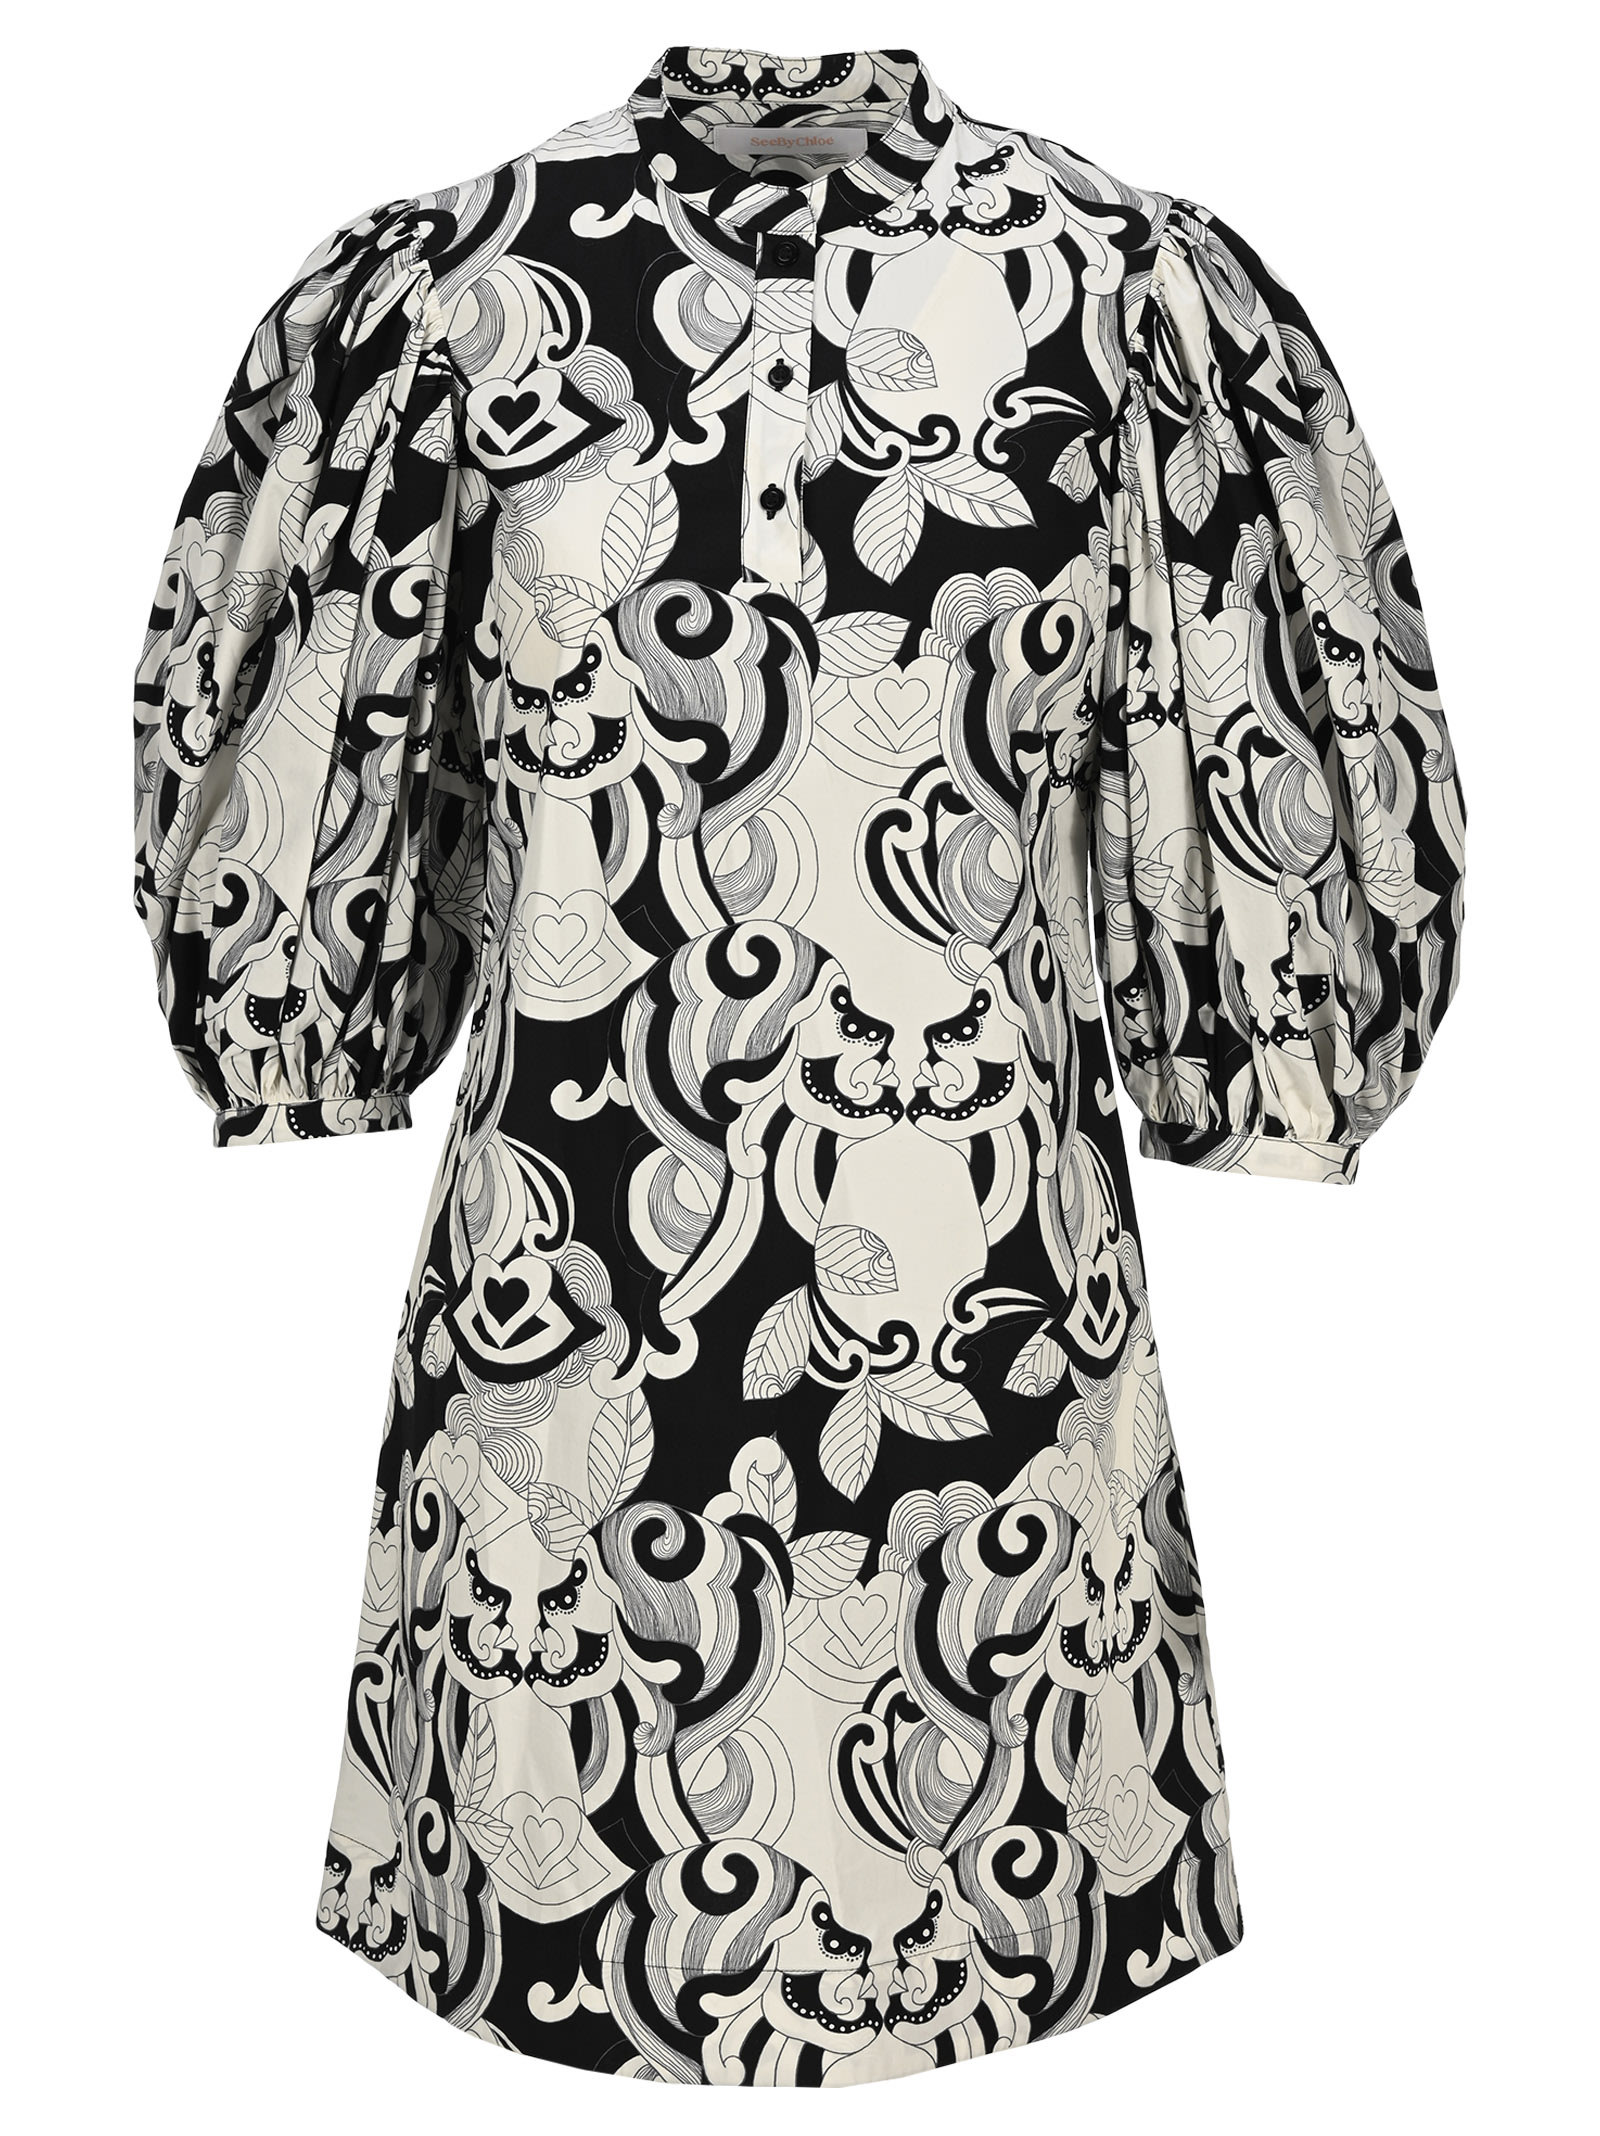 Buy See by Chloé See By Chloe Graphic Print Mini Dress online, shop See by Chloé with free shipping